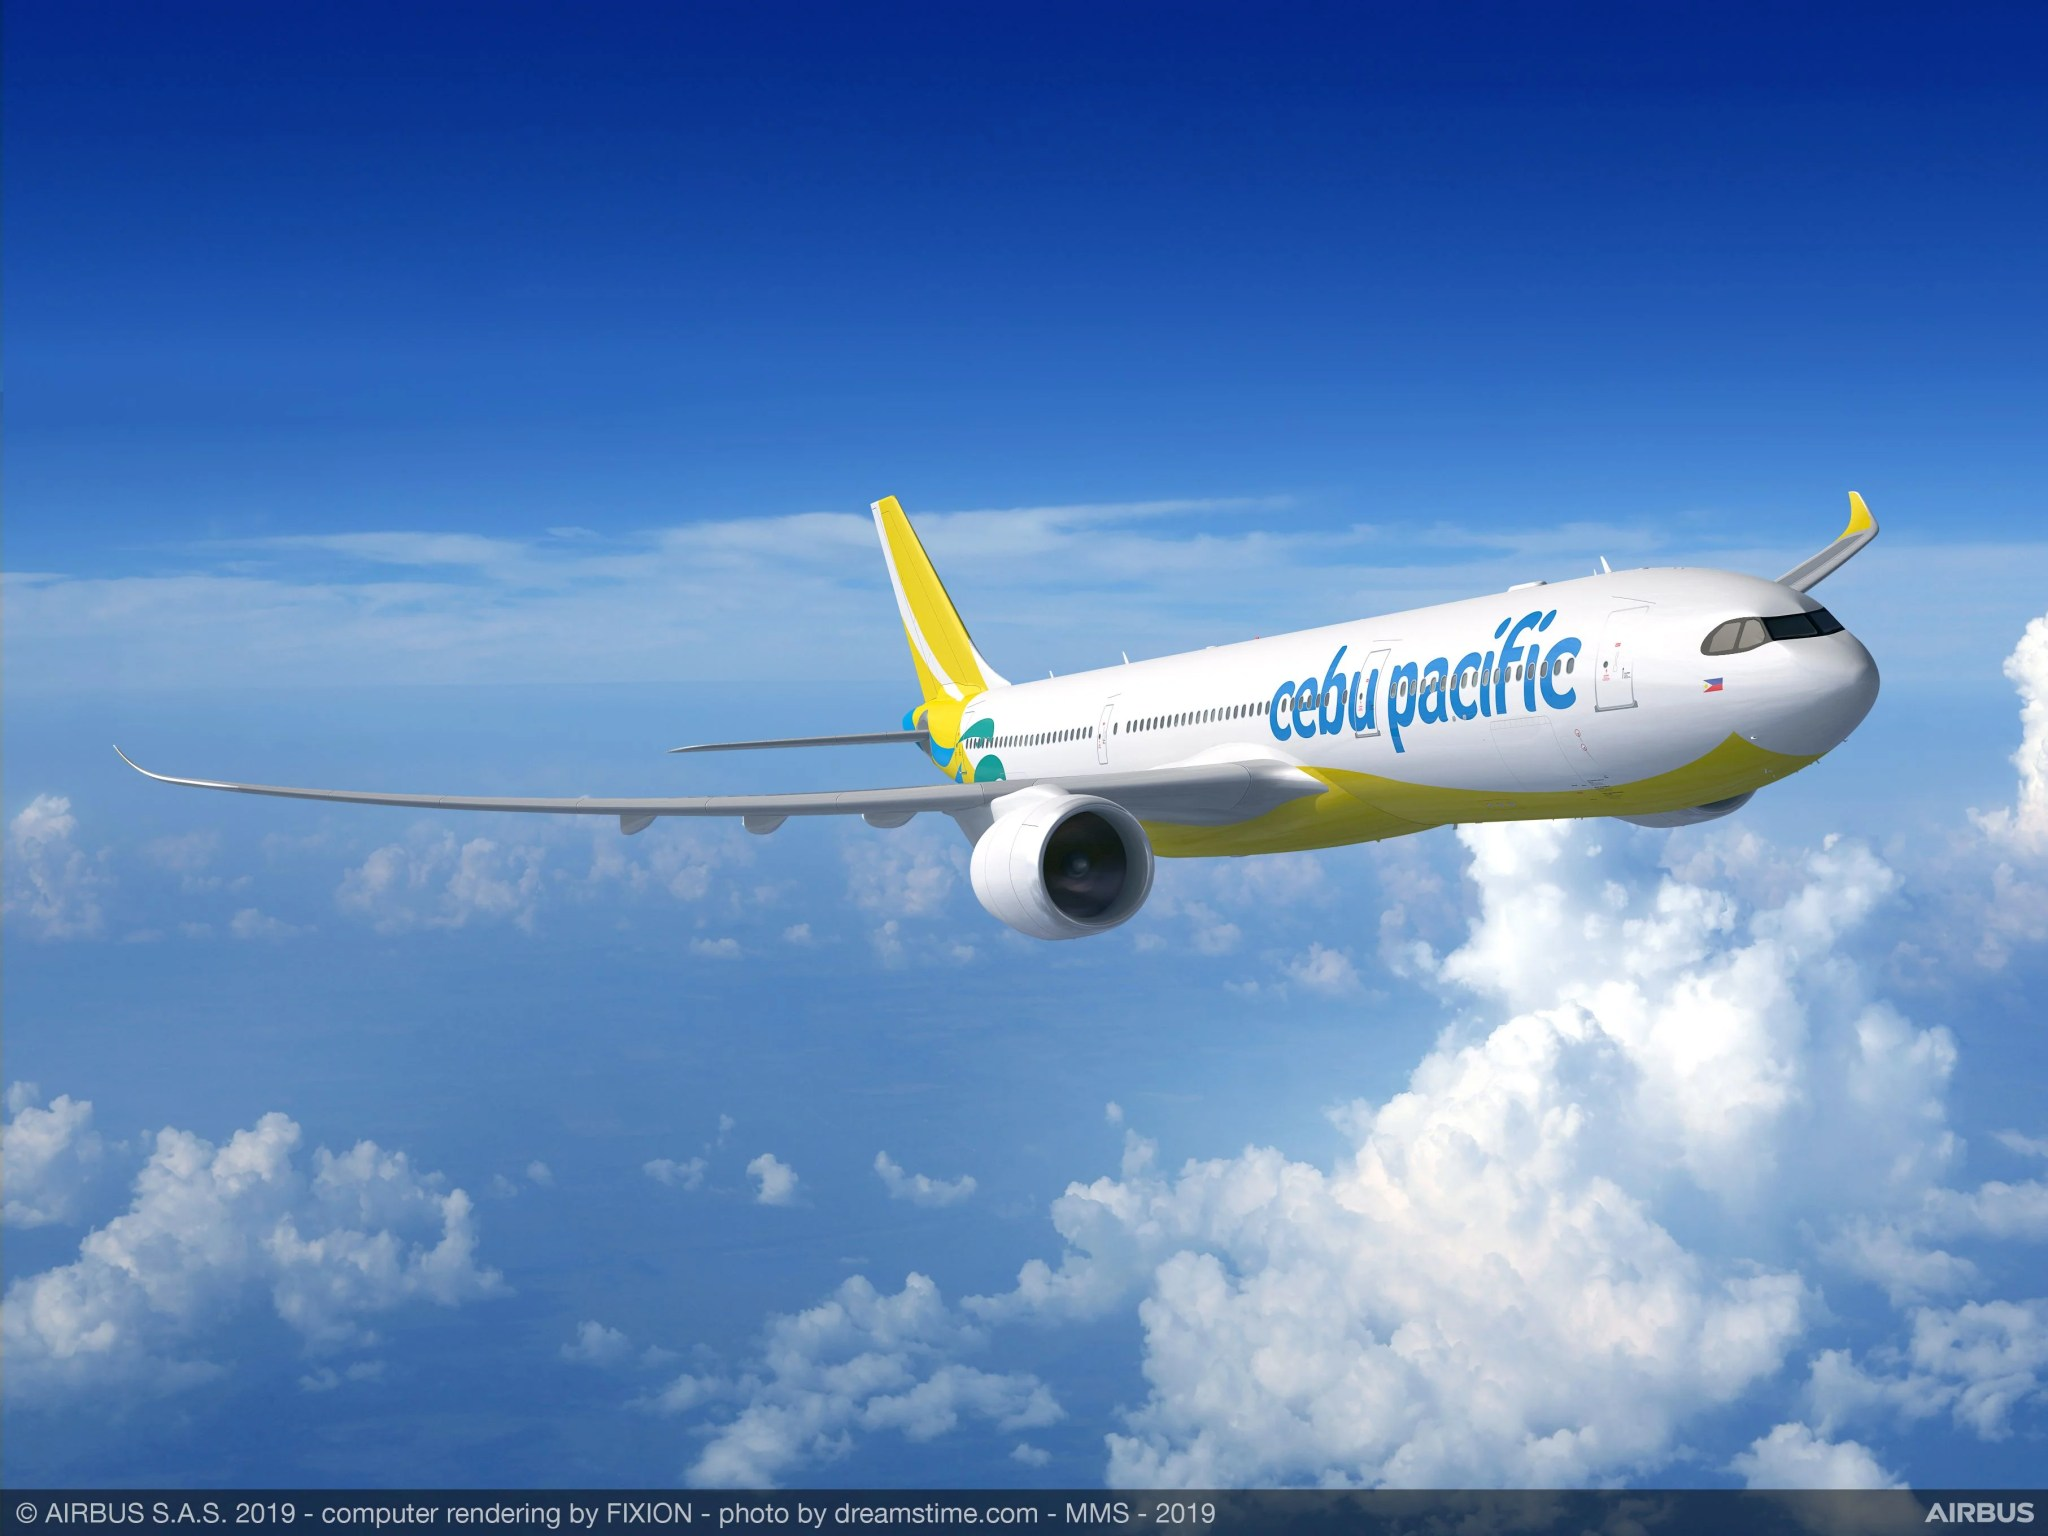 Cebu Pacific Plans to Squeeze 460 Economy Seats on Airbus A330neo